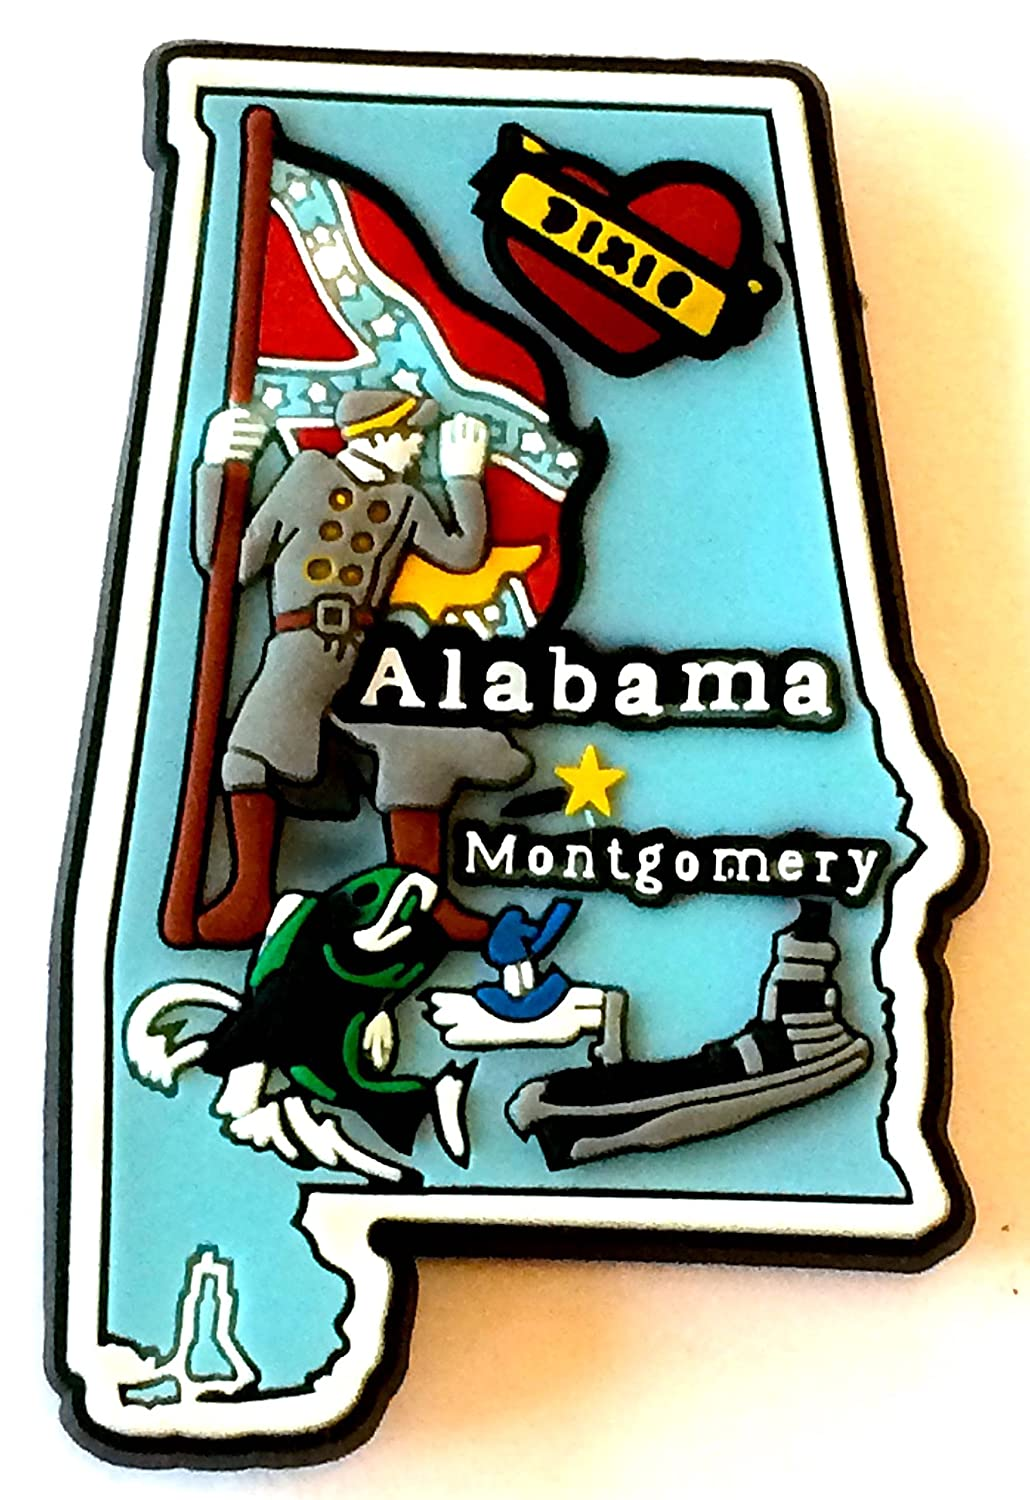 Alabama State Multi Color PVC Fridge Magnet Souvenir Destiny Alabamapvcmgnt